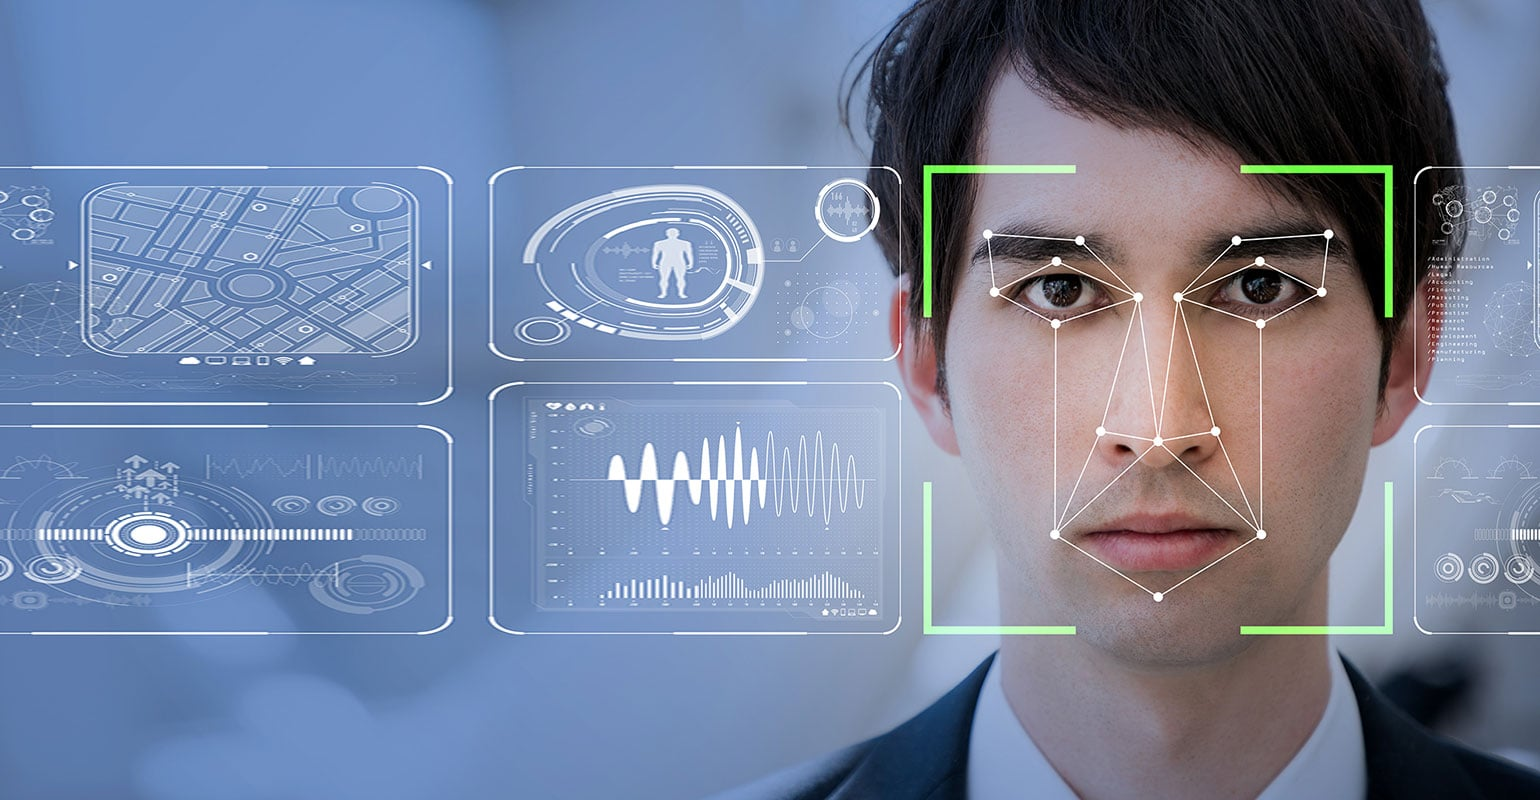 Harmful Effects of Facial Recognition Technolgy